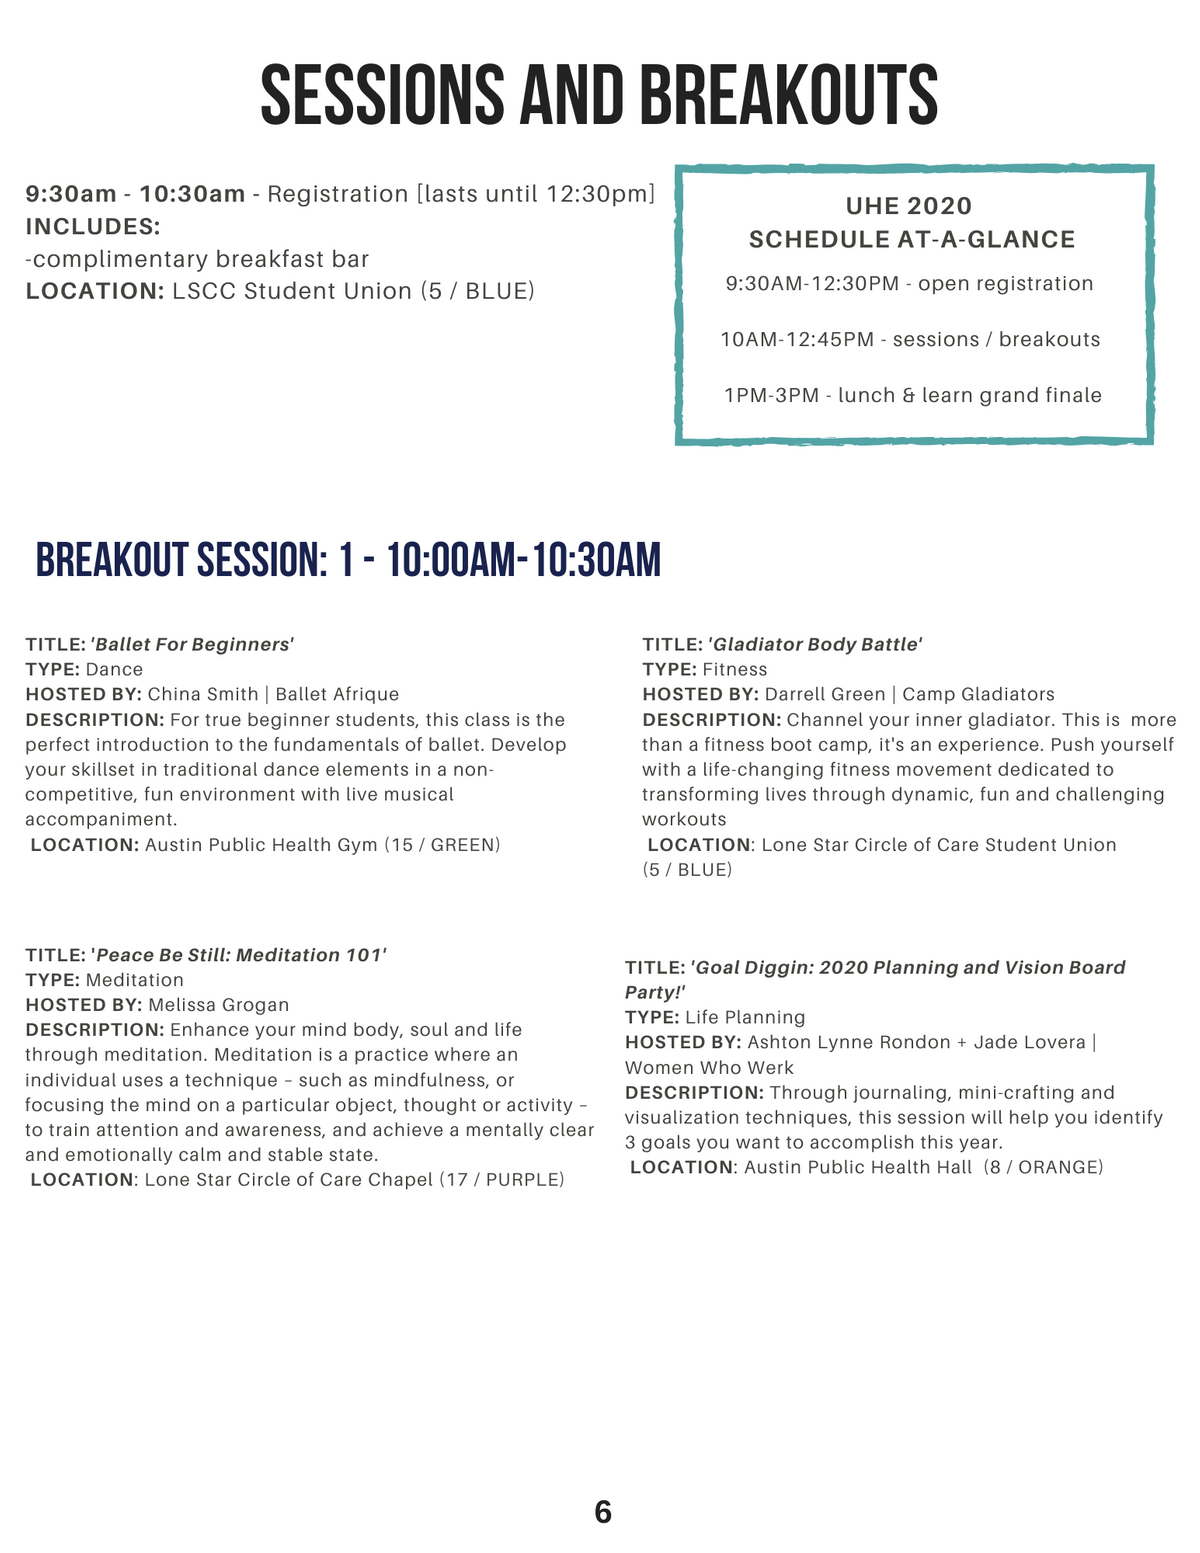 urban health expo 2020 -booklet - FINAL DRAFT.png